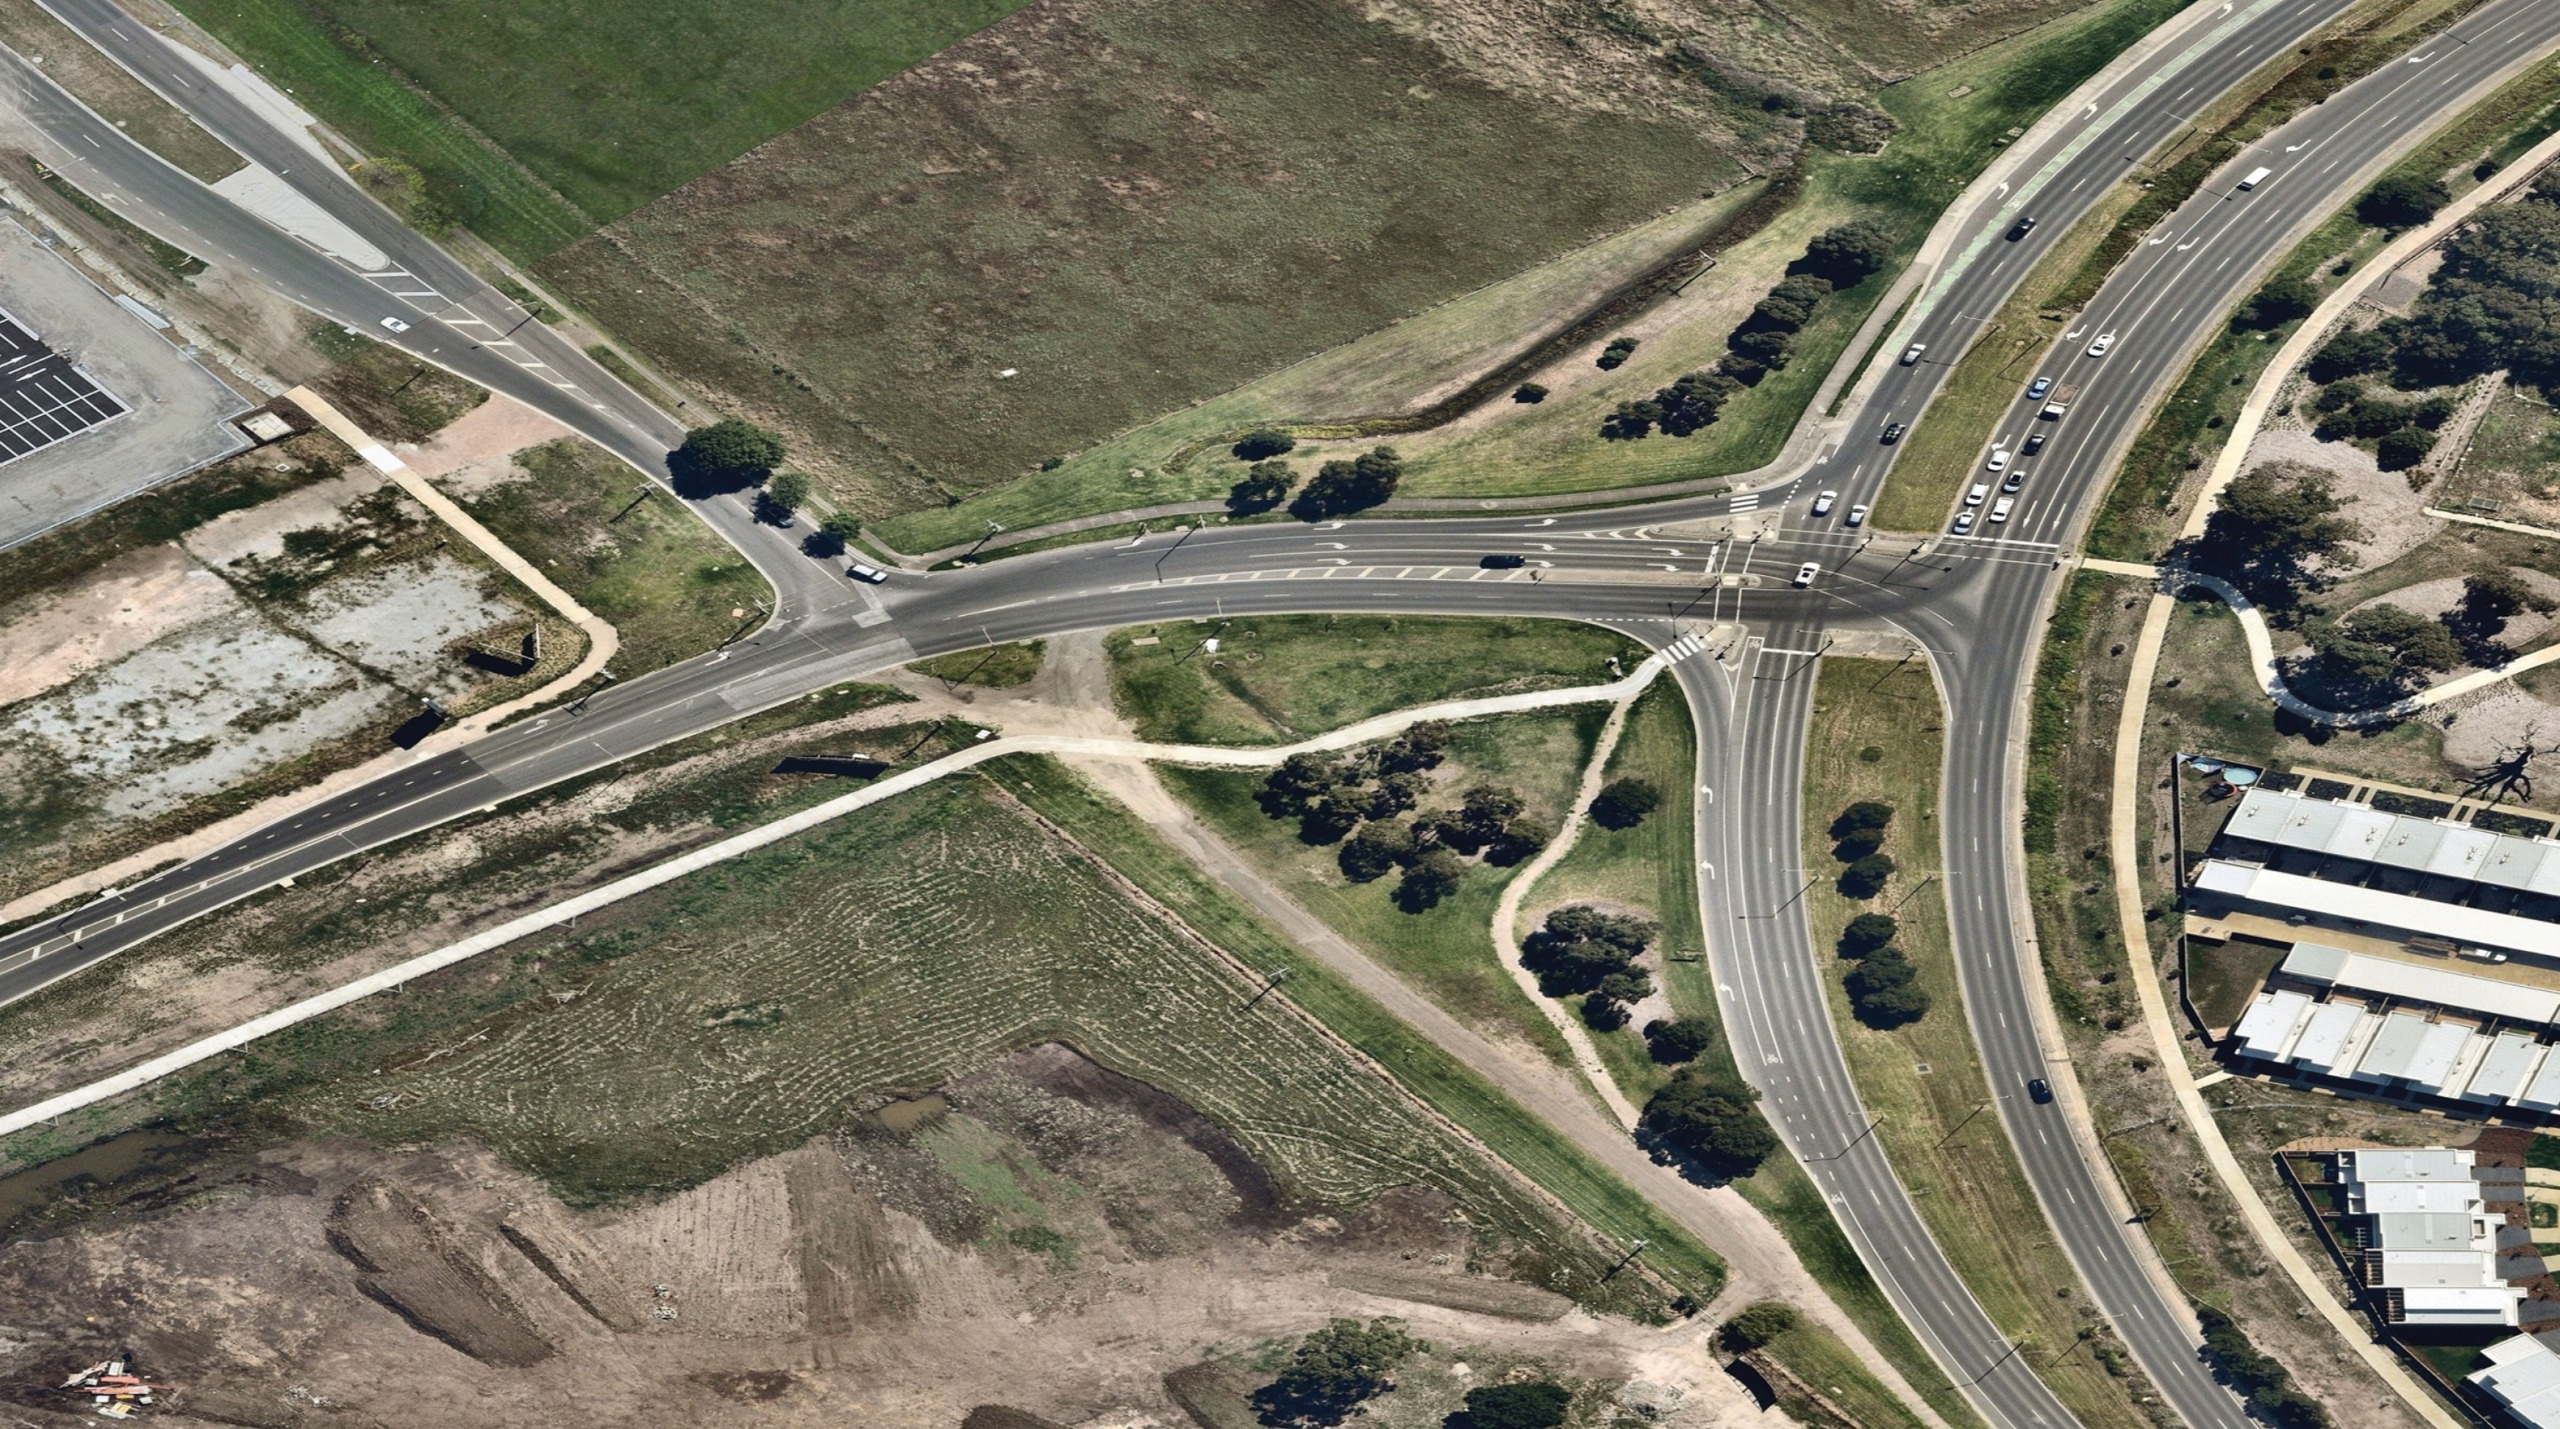 Aerial view of the existing Evans Road intersection